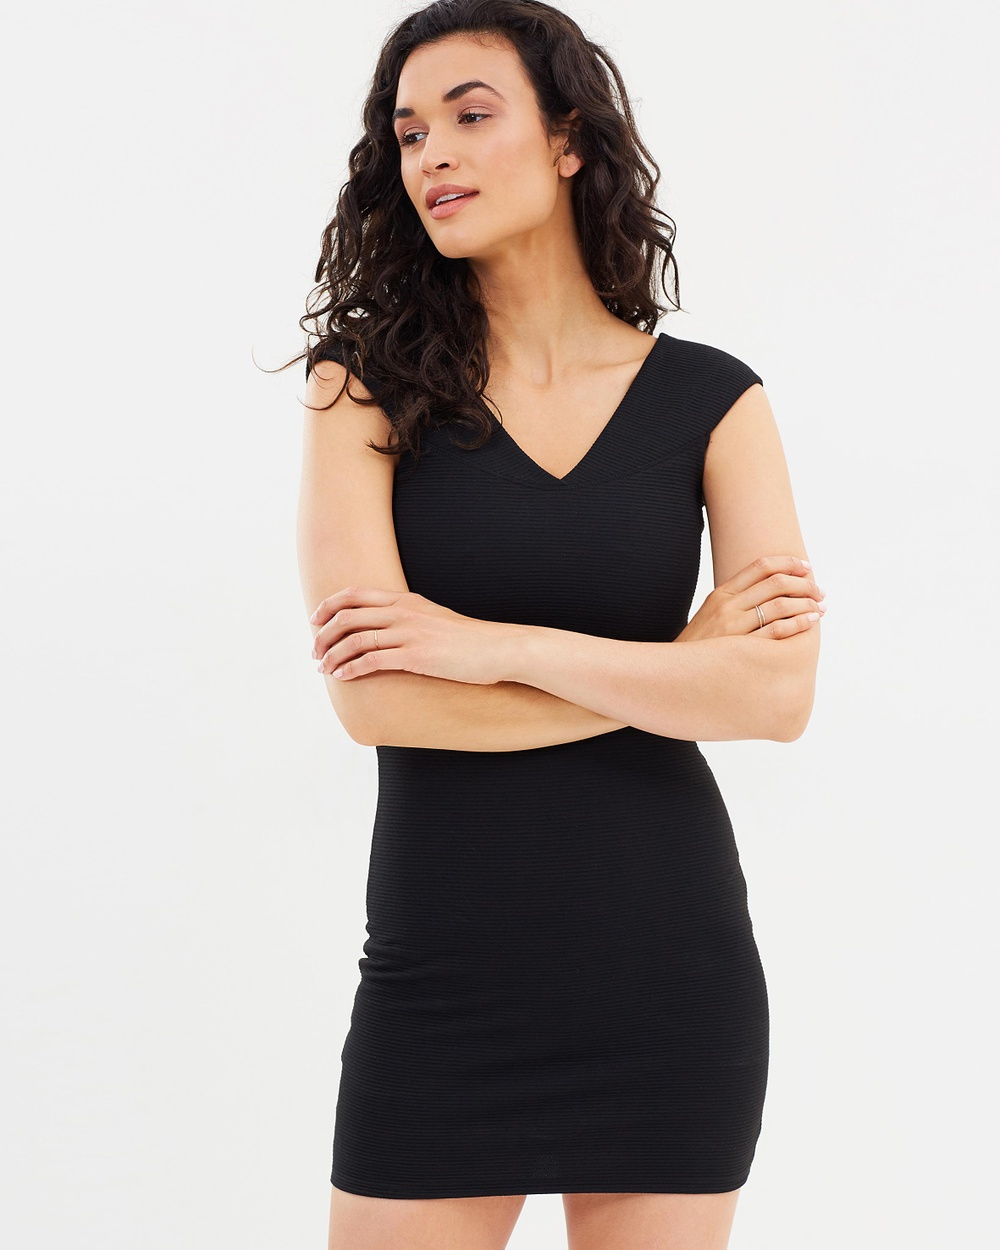 M.N.G Fitted Textured Dress Bodycon Dresses Black Fitted Textured Dress